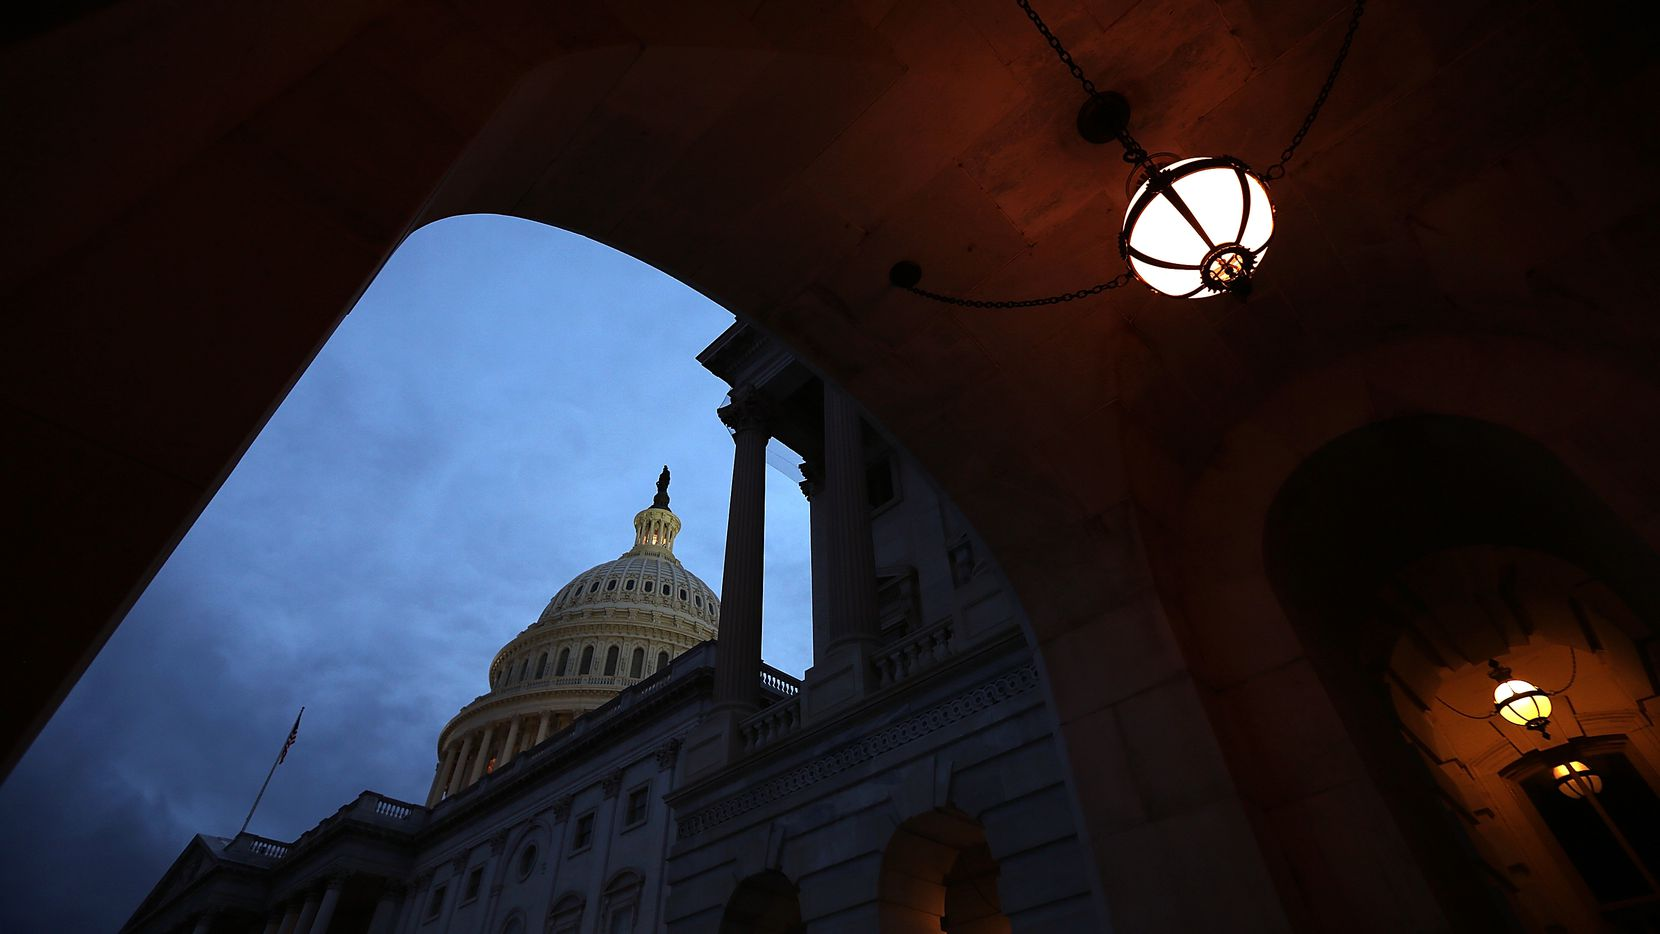 Congress remains gridlocked over how to provide Americans additional relief related to the coronavirus pandemic. (Photo by Win McNamee/Getty Images)